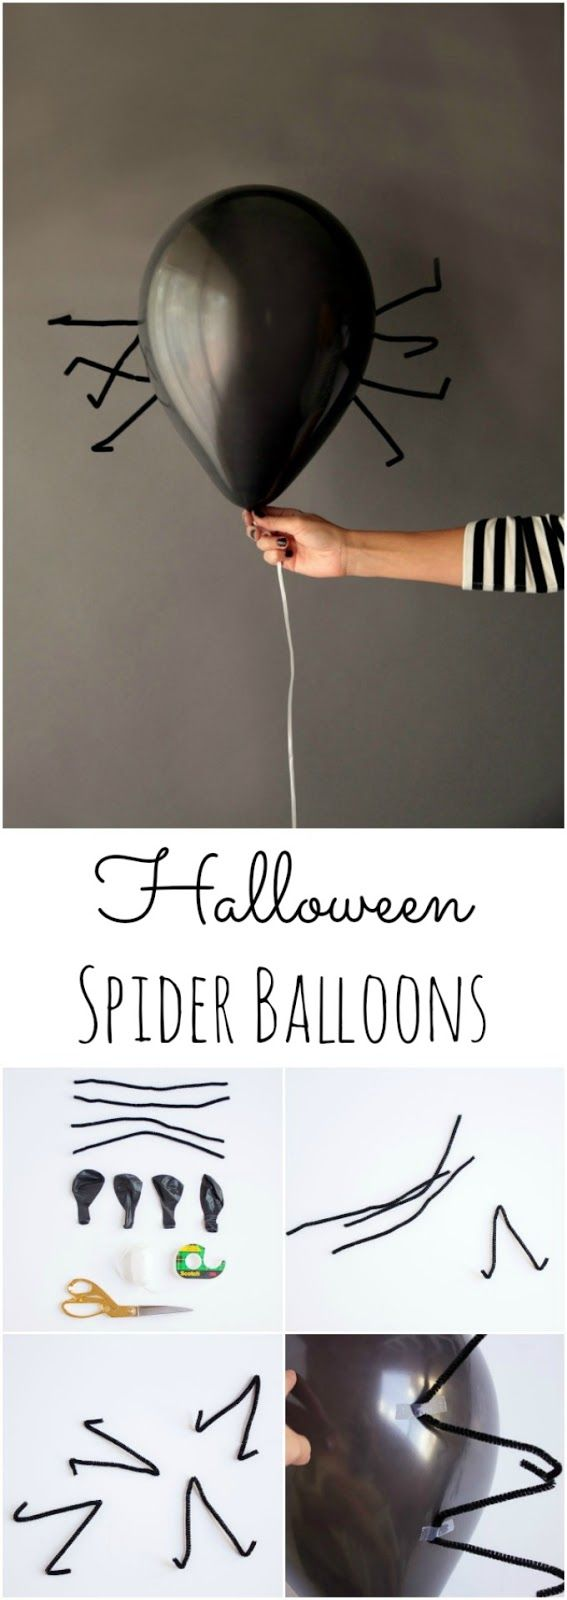 Halloween Spider Balloons made simply with a black helium balloons and pipe cleaners!